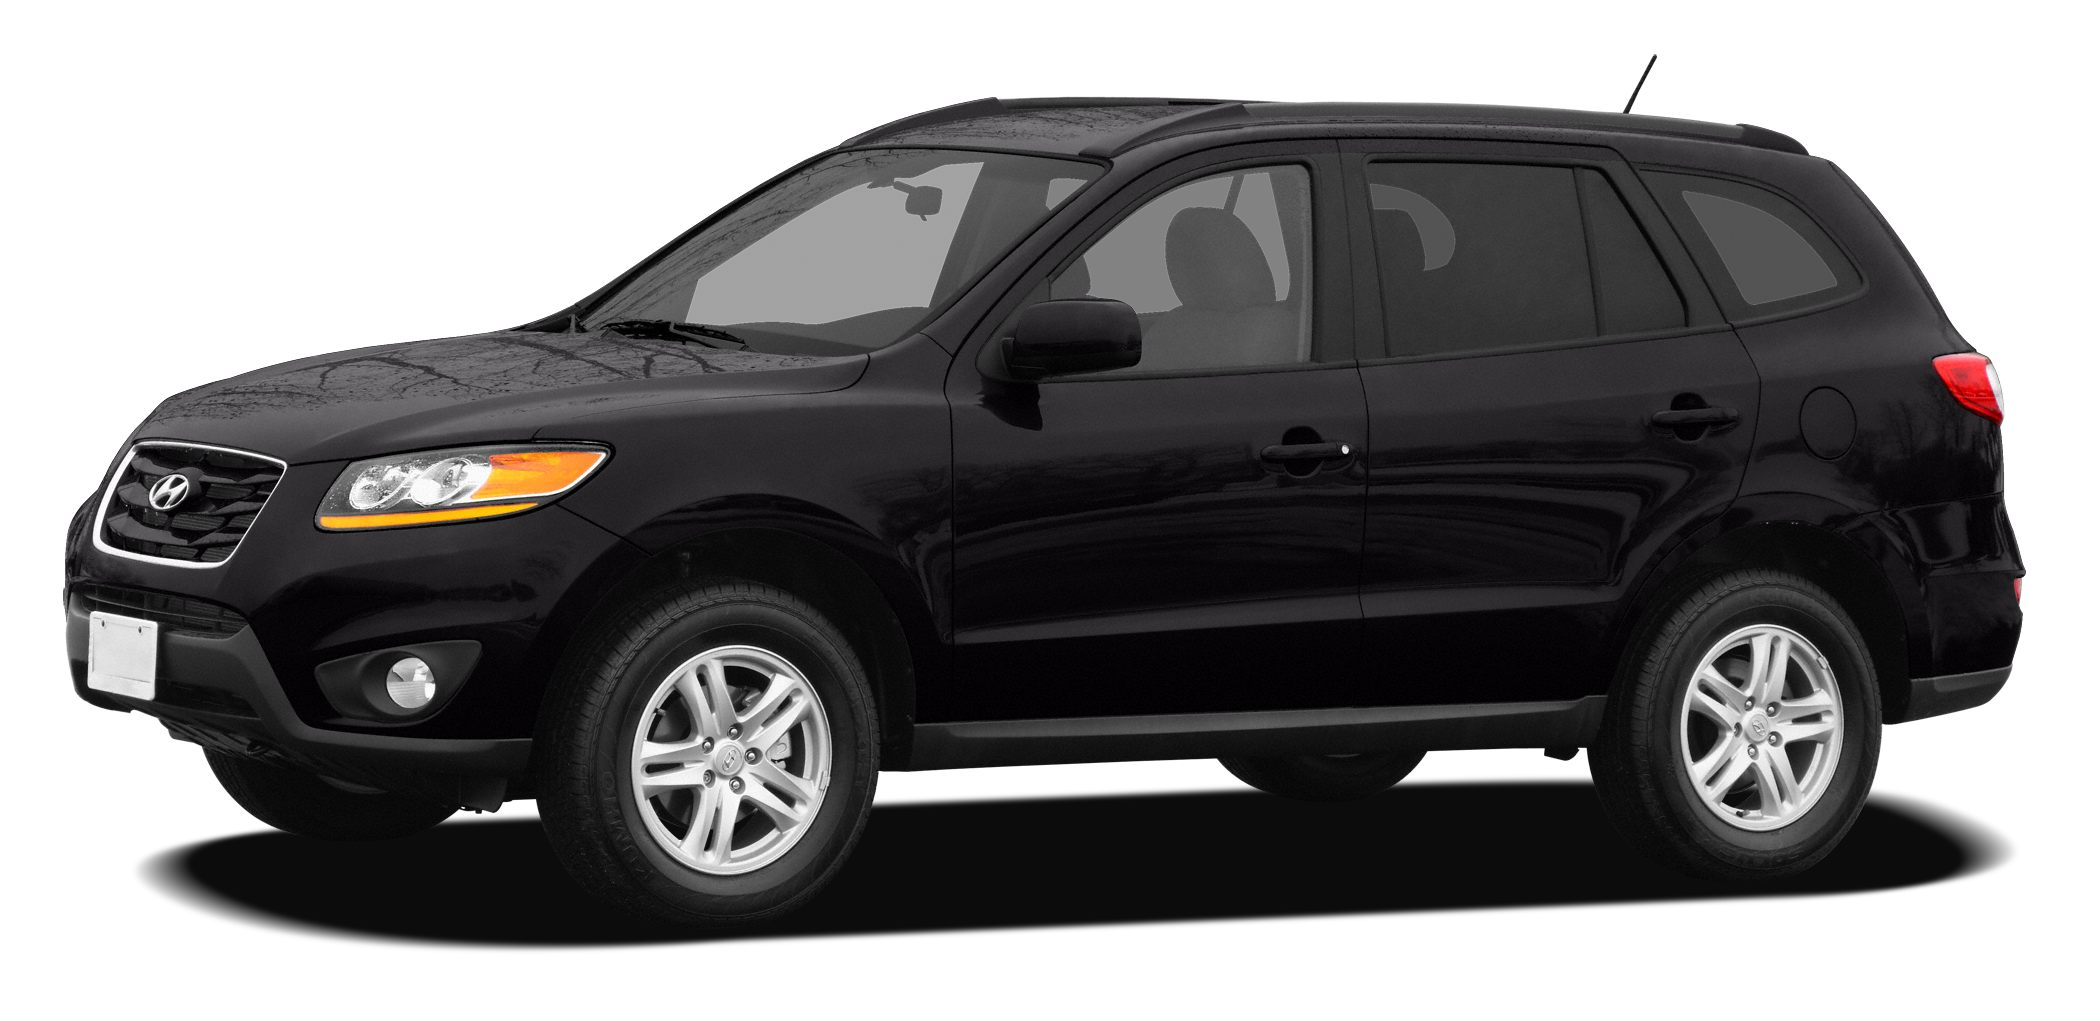 2011 Hyundai Santa Fe GLS Come to Regal Honda Real Winner Are you looking for a terrific value i